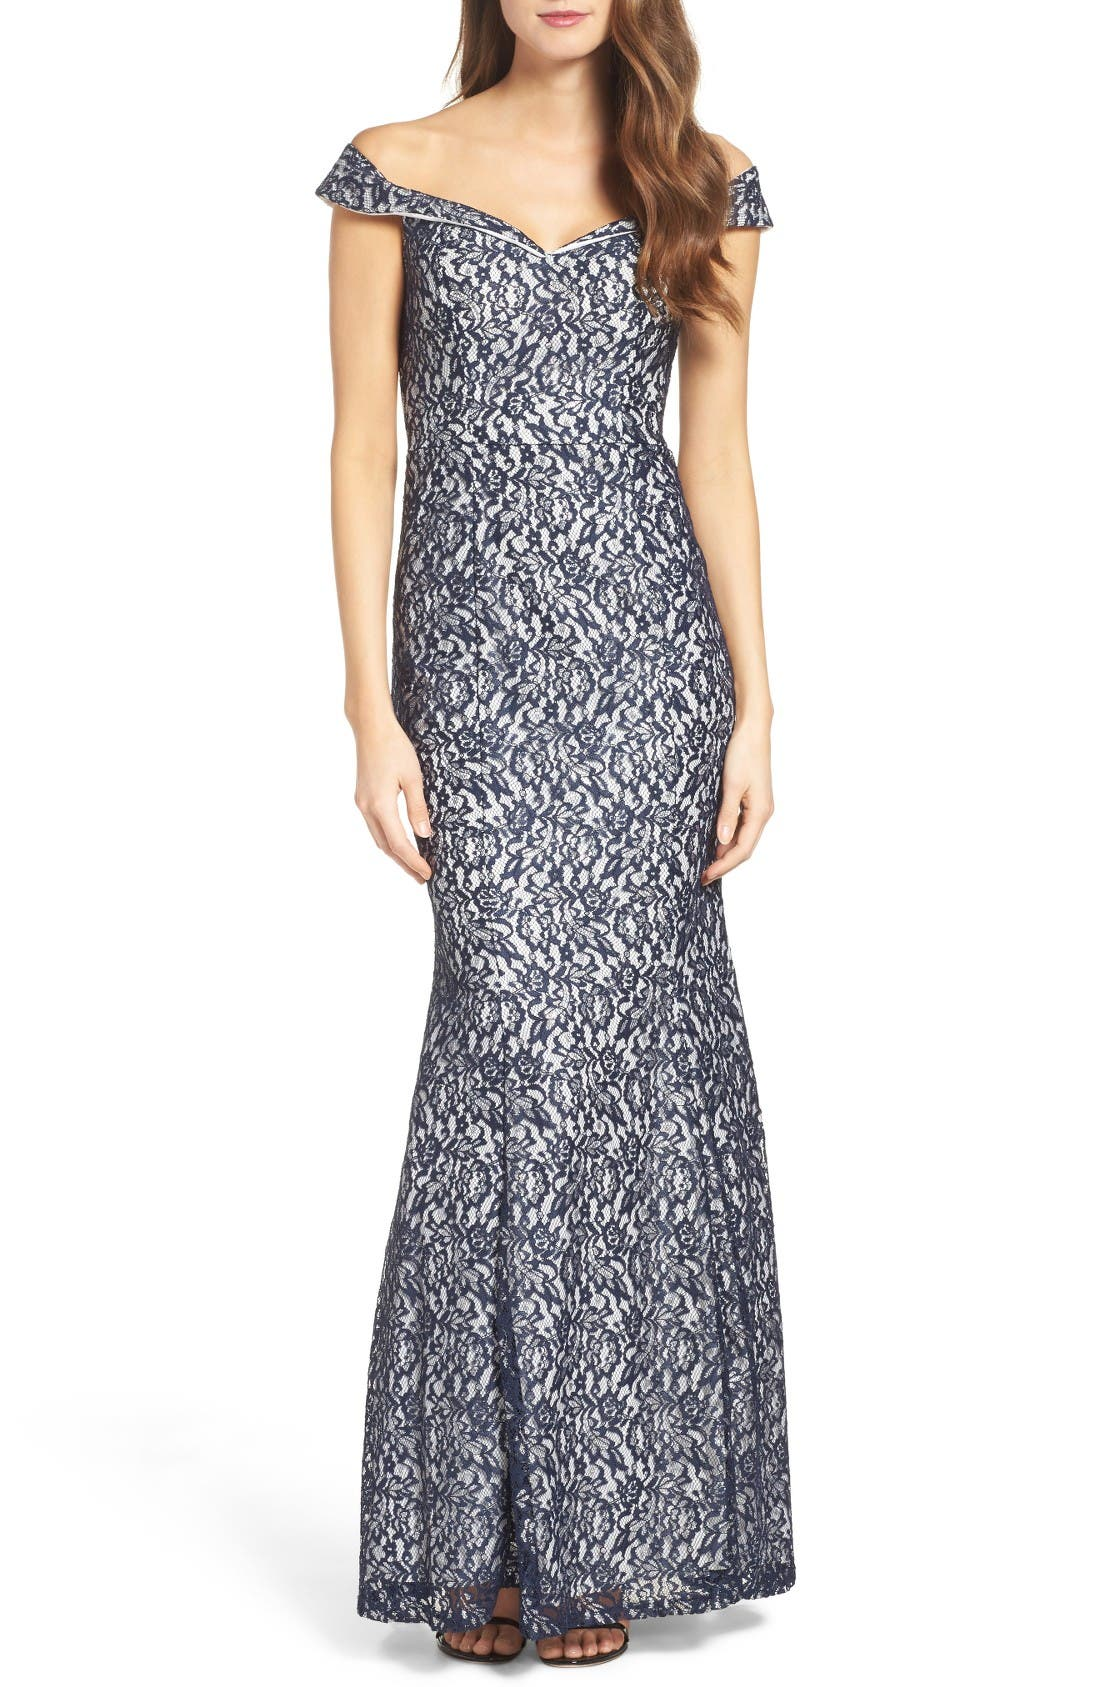 Main Image - Sequin Hearts Off the Shoulder Lace Mermaid Gown